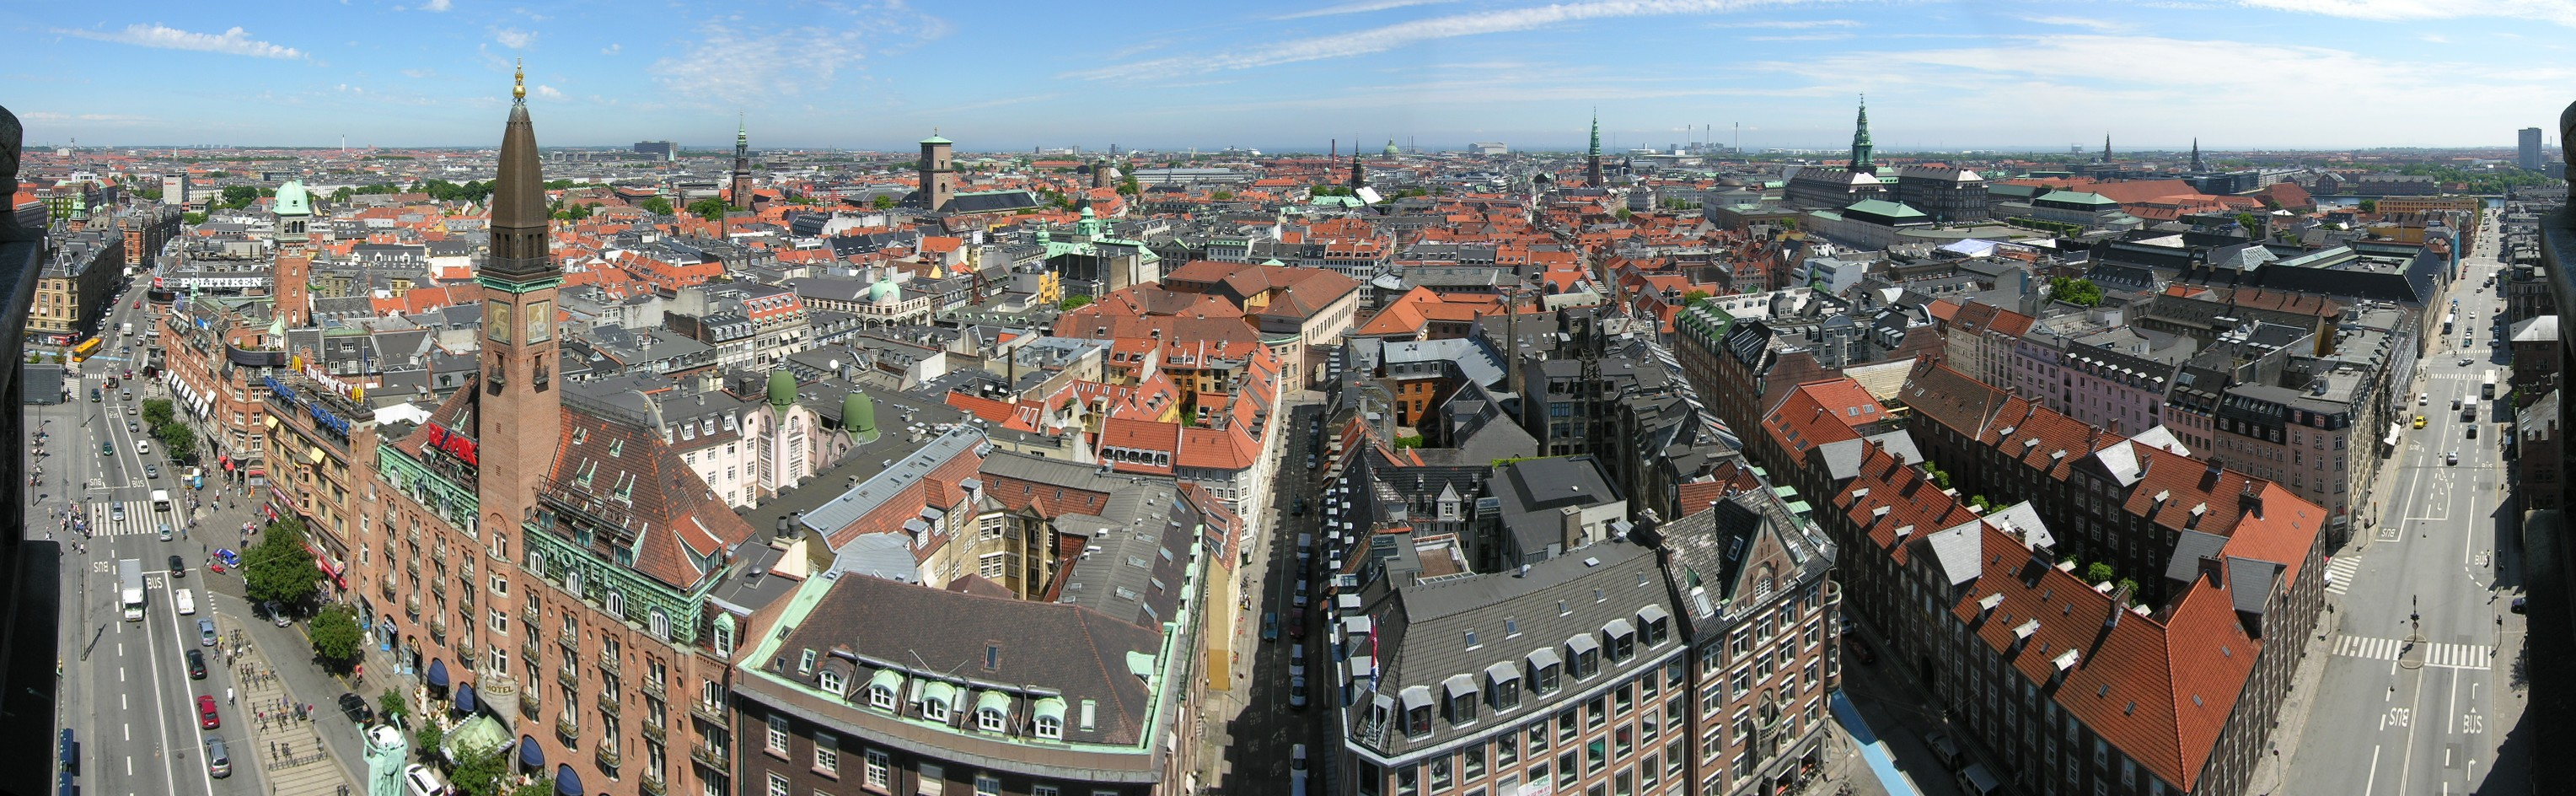 Copenhagen city center skyline, Denmark